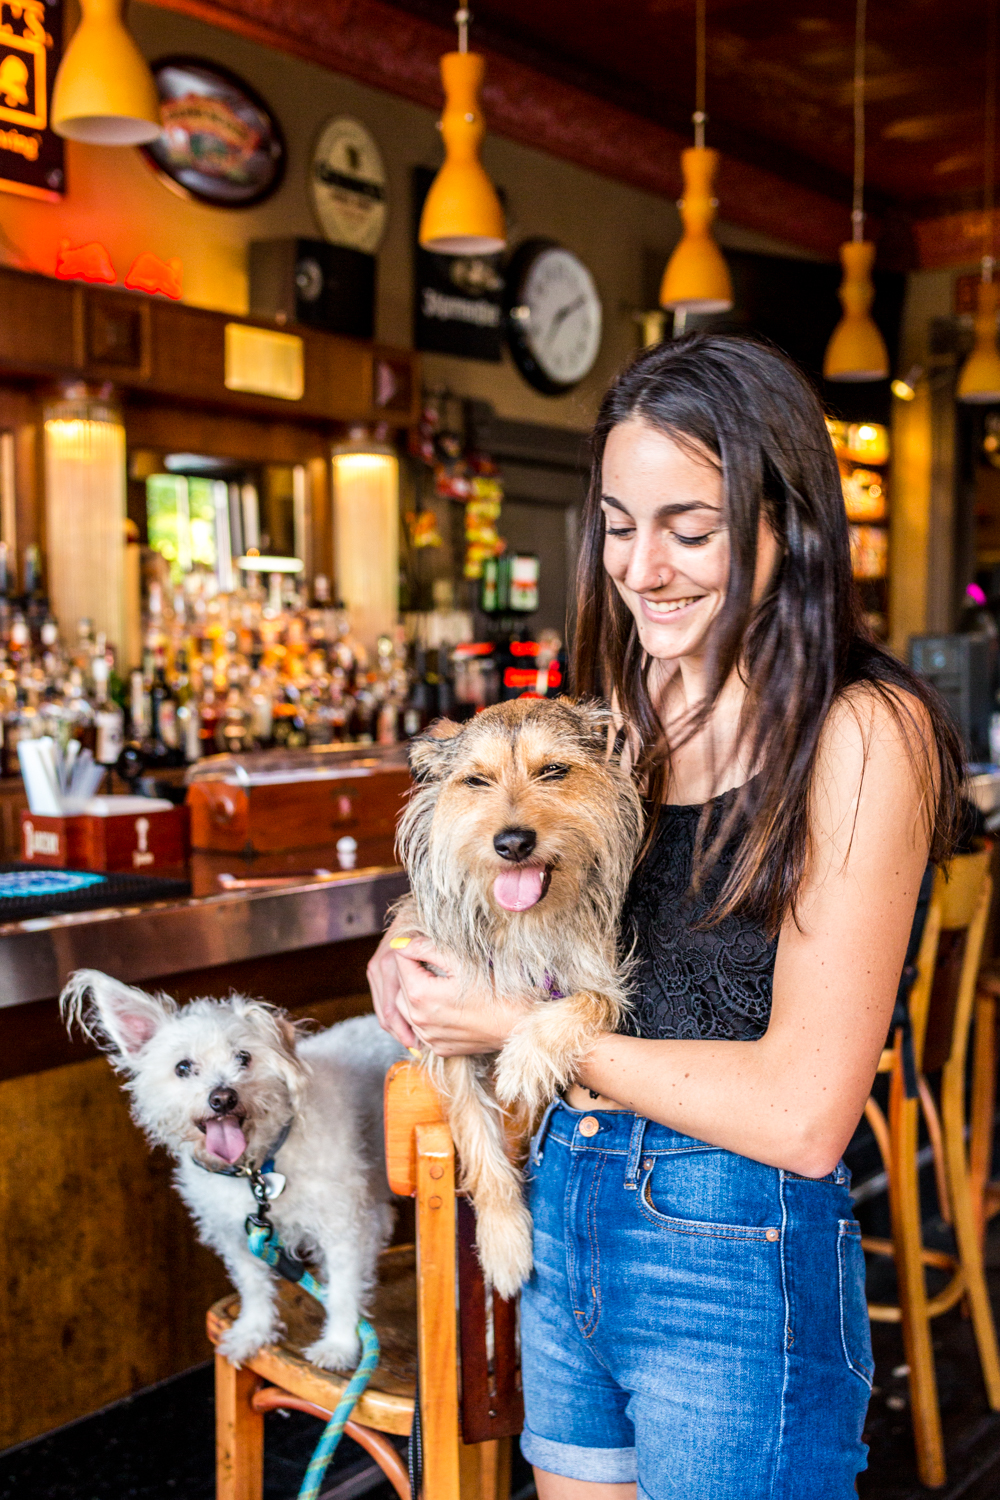 PLACE: The B-List / ADDRESS: 343 Division Street (Bellevue) / The self-proclaimed hole in the wall is a neighborhood hangout where pups are welcome before 8 PM. The B-List offers a collection of over 100 bourbons, a TV and fire pit on the patio, and a daily $3 Craft Special. / Image: Catherine Viox // Published: 10.14.19